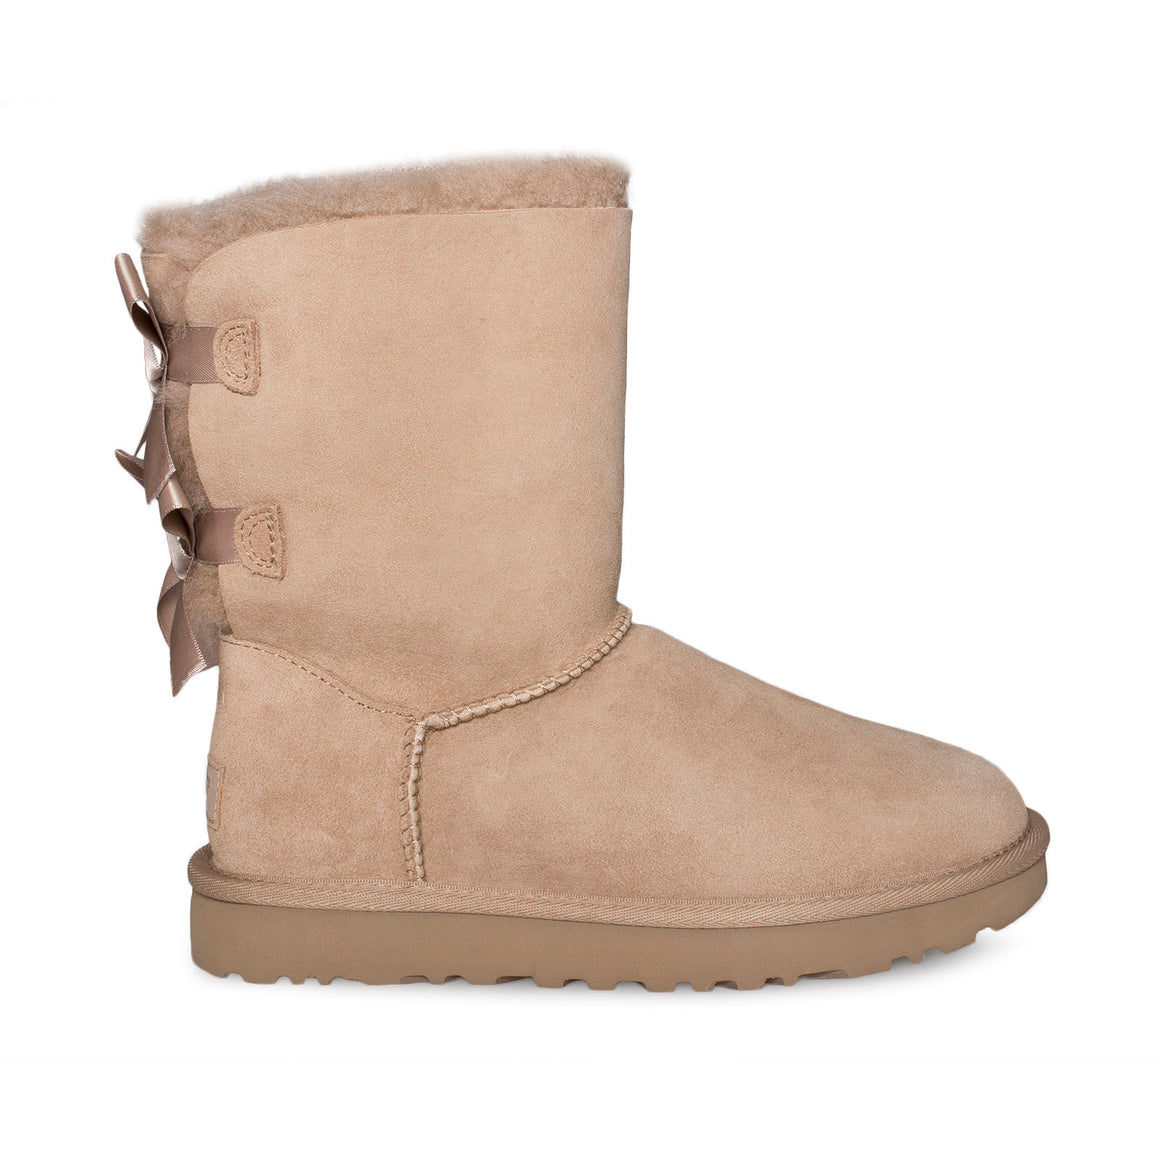 UGG Bailey Bow II Fawn Boots - Women's